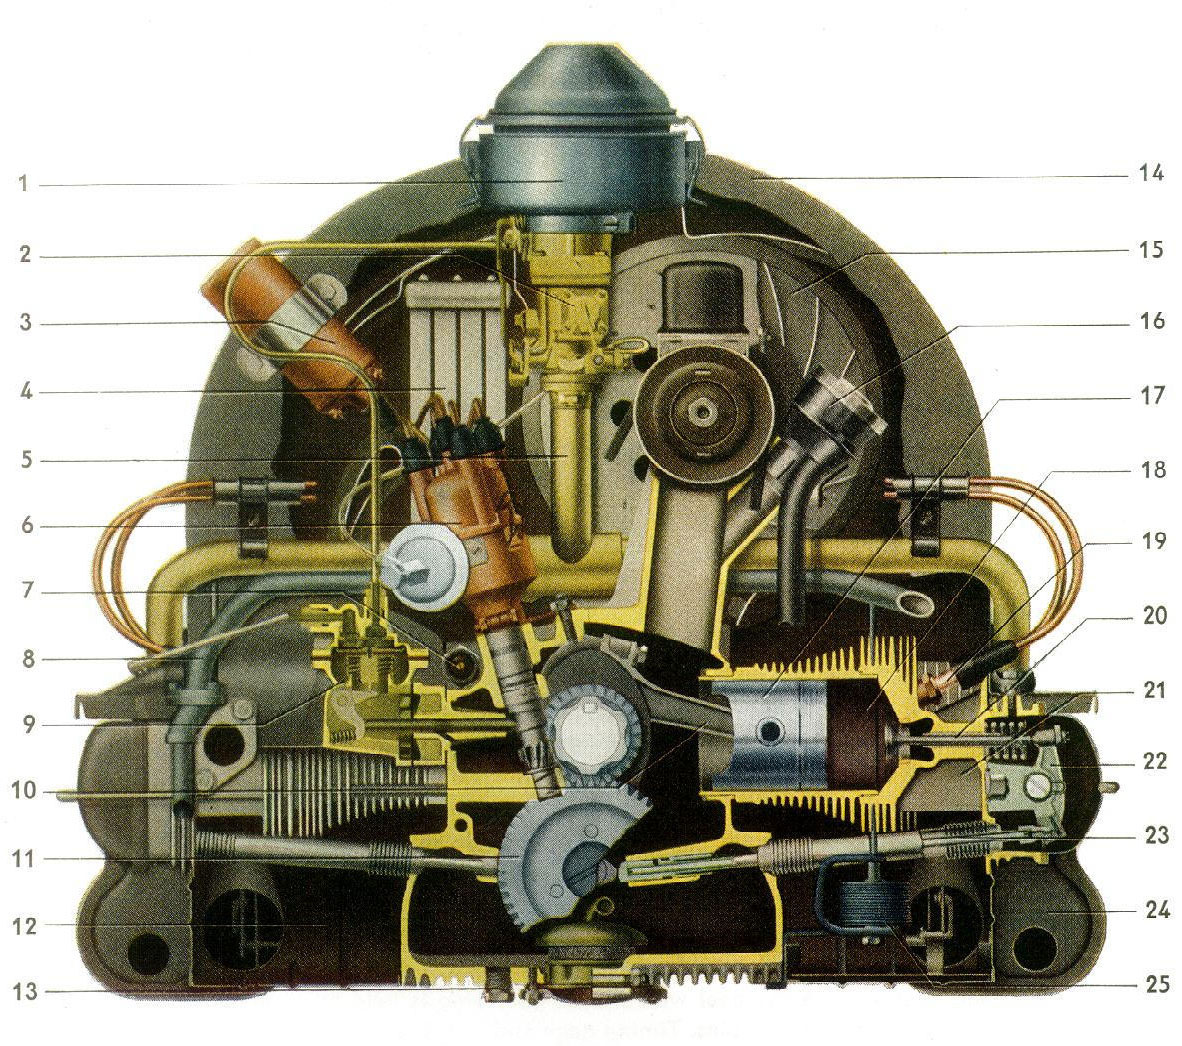 1973 1600cc vw engine tin diagram volkswagen bus cartype 1600cc vw engine parts diagram #1